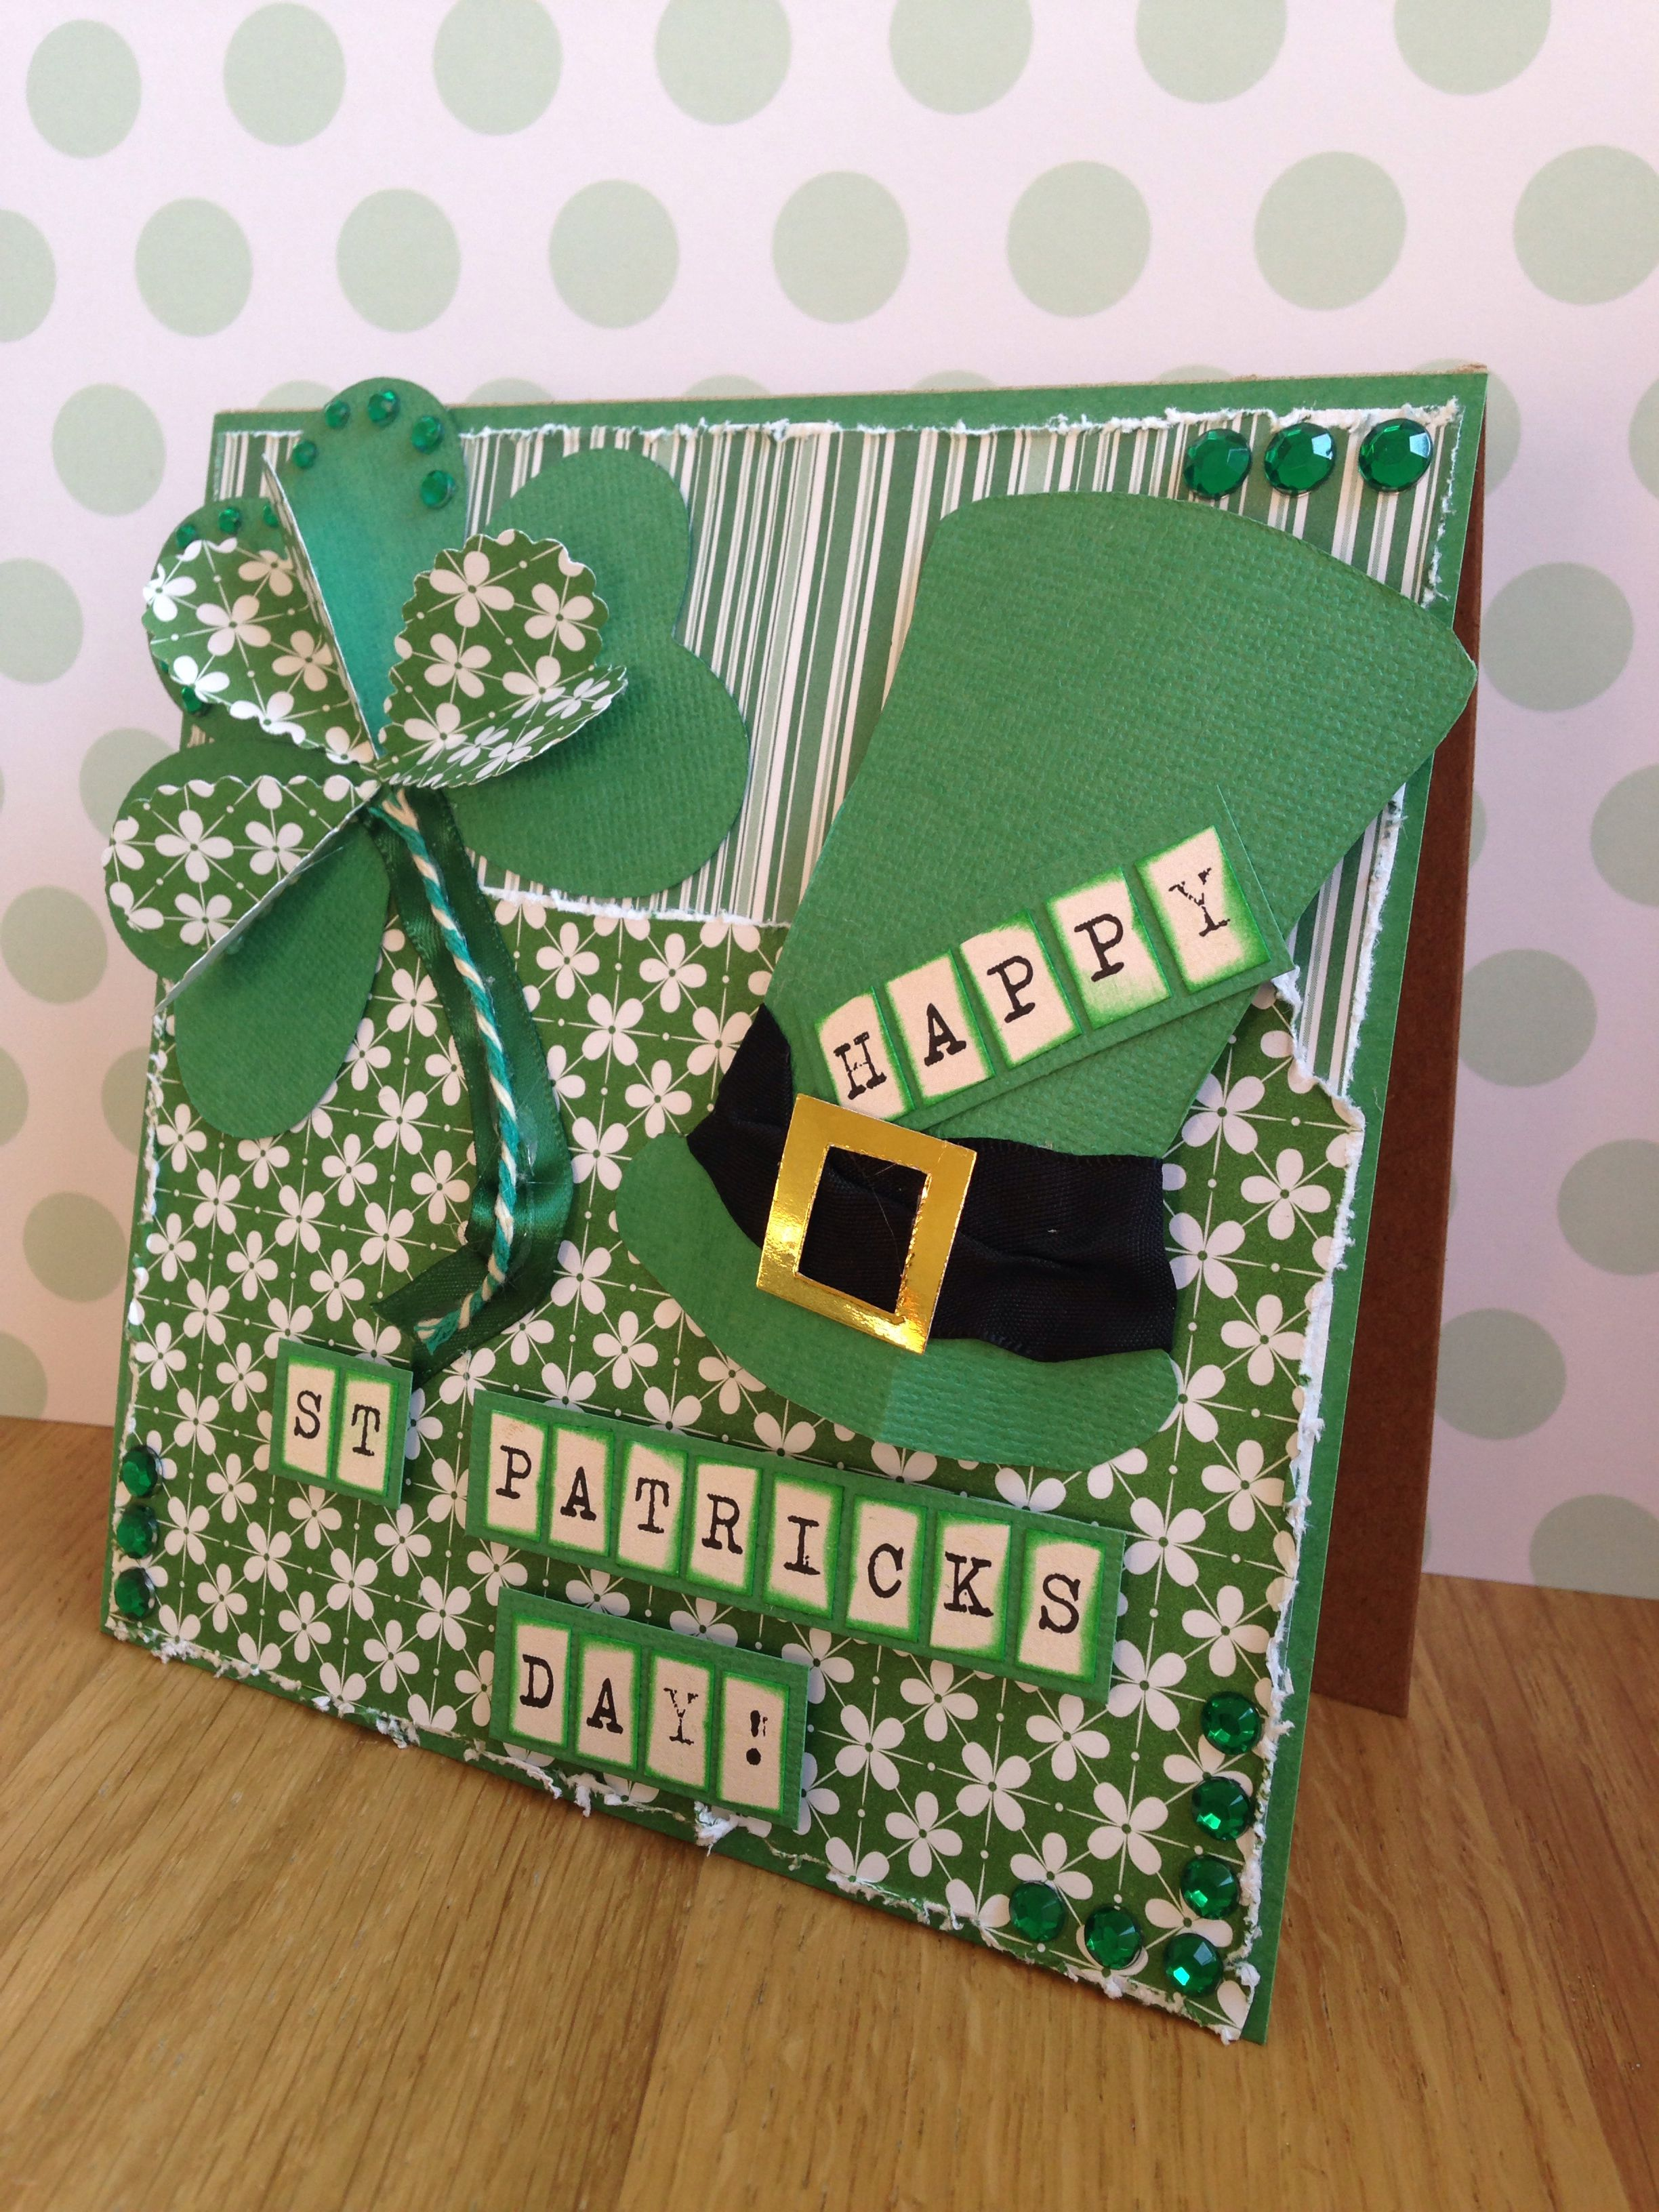 Happy st patricks day card made for cardmaking and